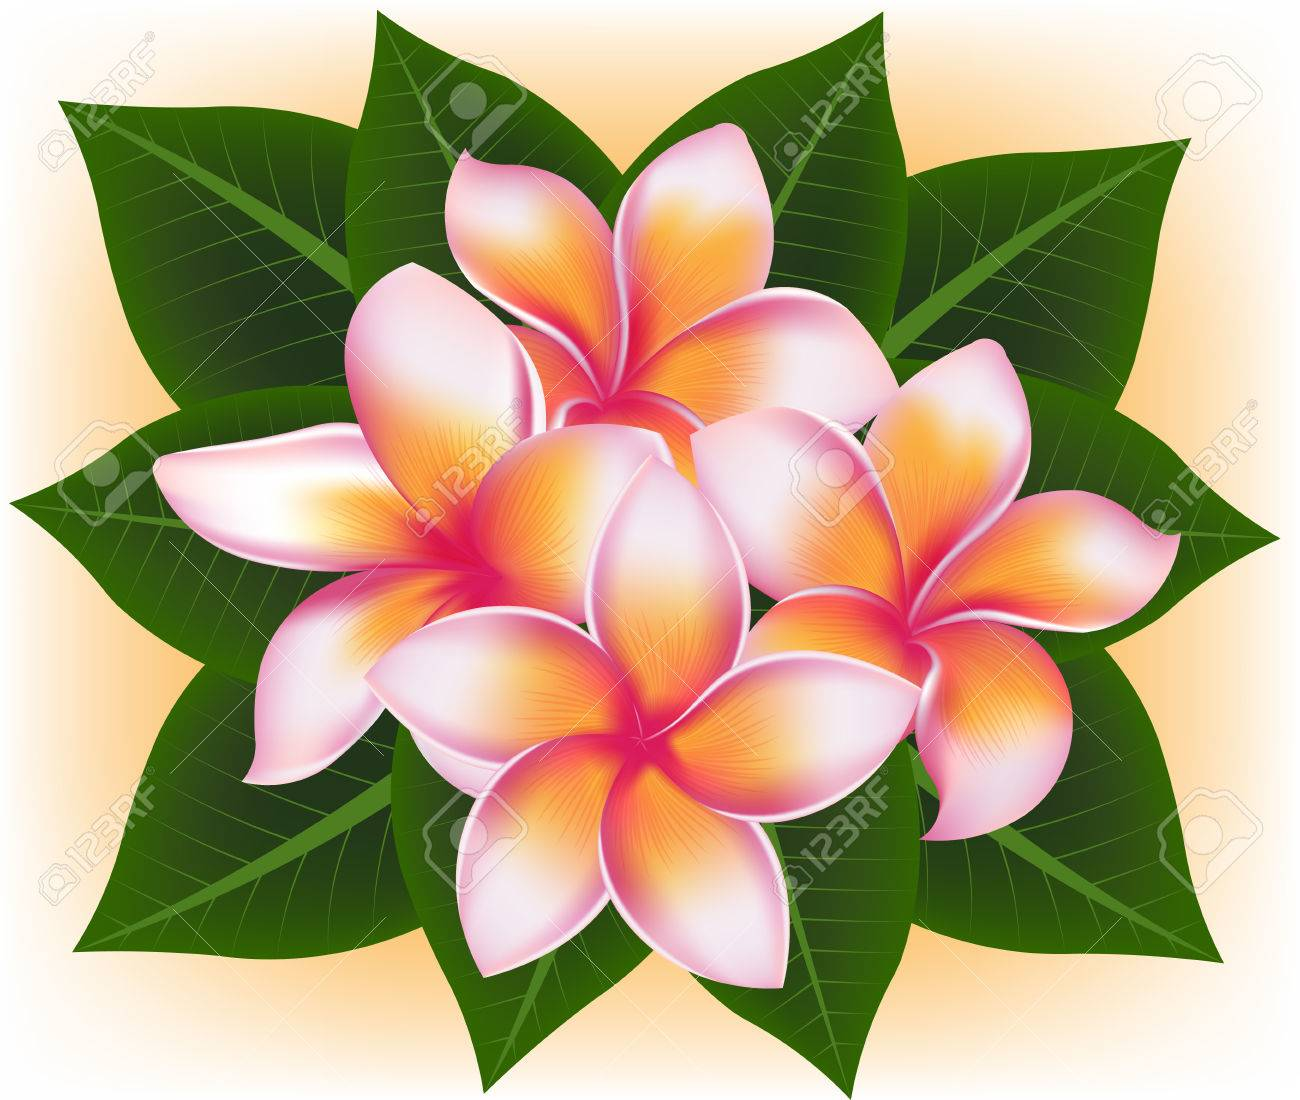 Illustration vector of hawaii flower frangipani plumeria rubra illustration vector of hawaii flower frangipani plumeria rubra and green leaves stock vector 44517177 izmirmasajfo